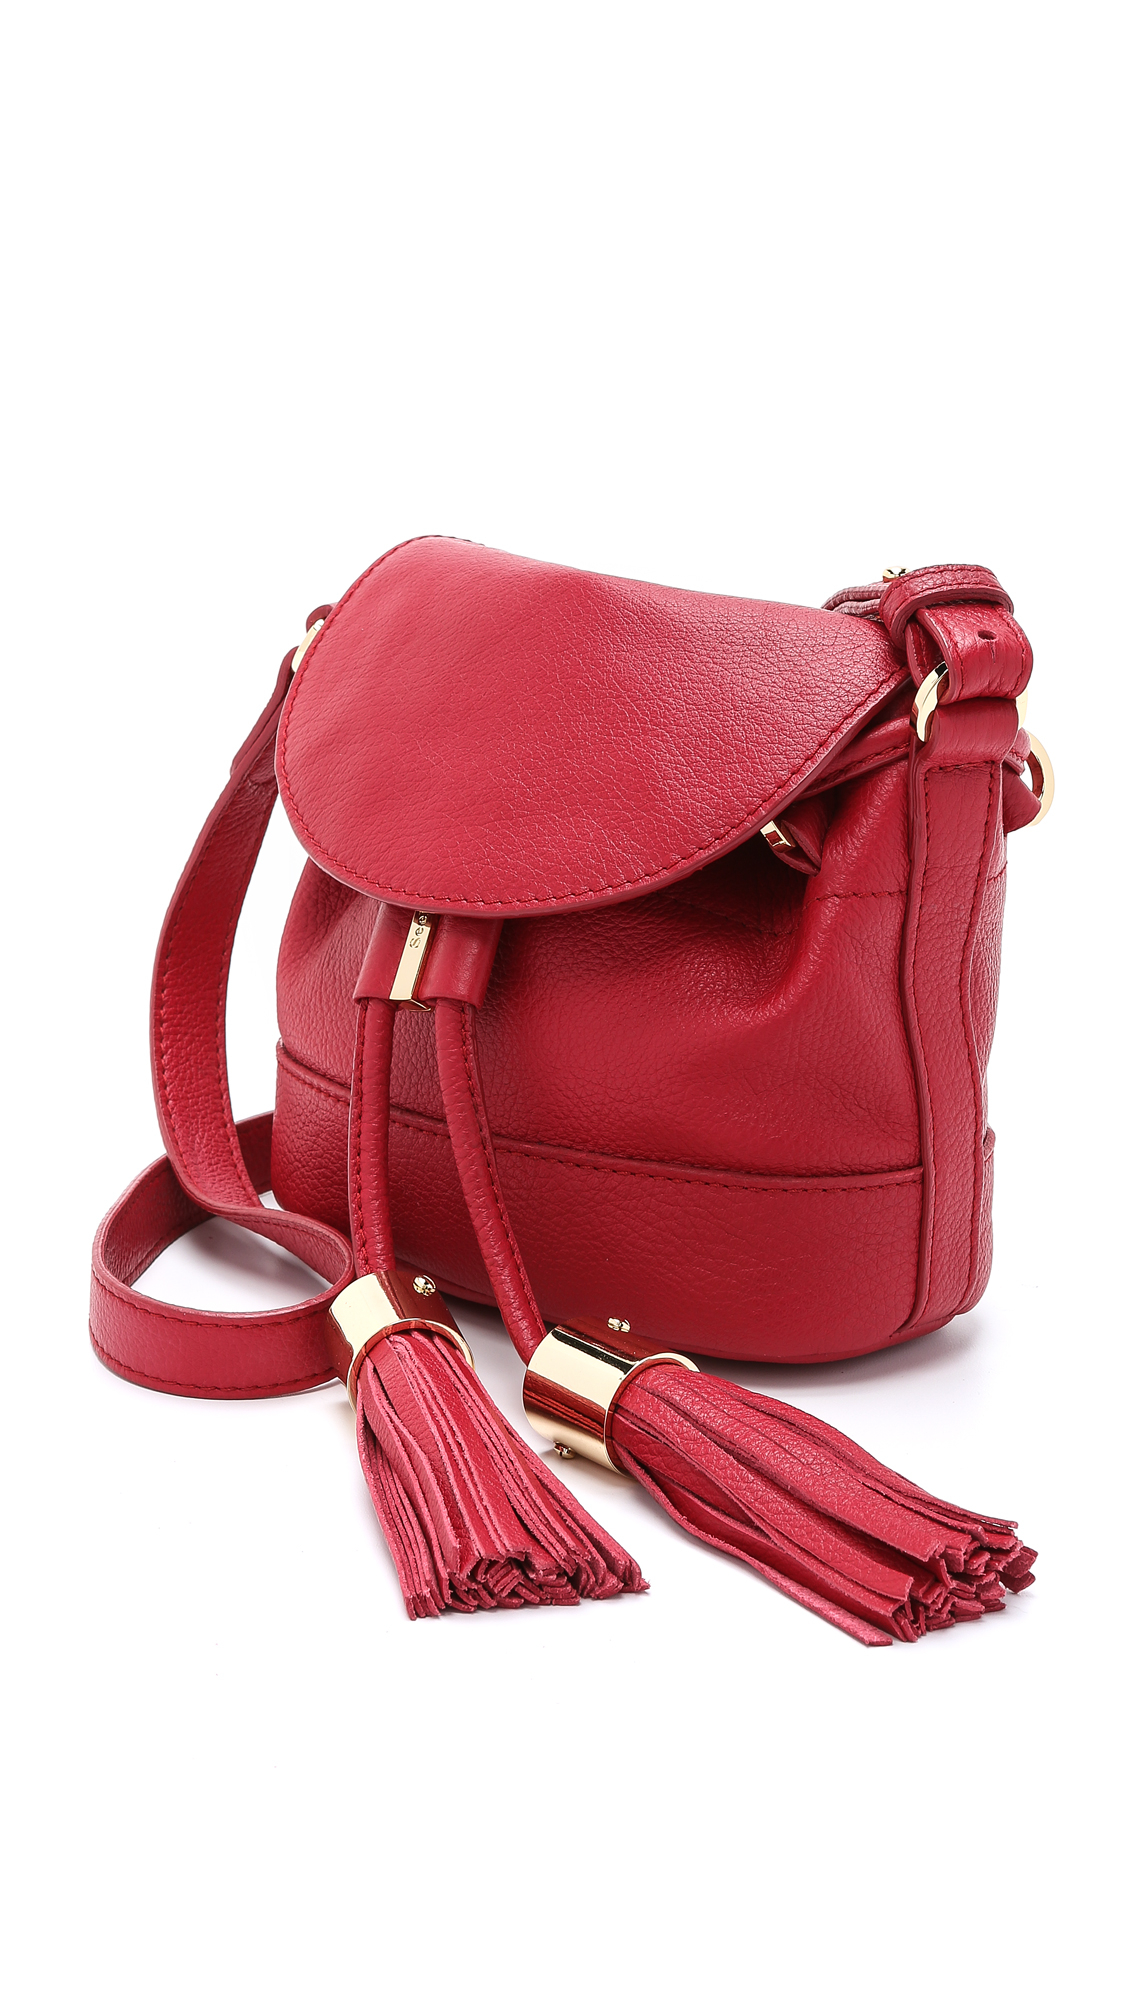 Lyst - See By Chlo Vicki Mini Cross Body Bag - Nude In Red-2663